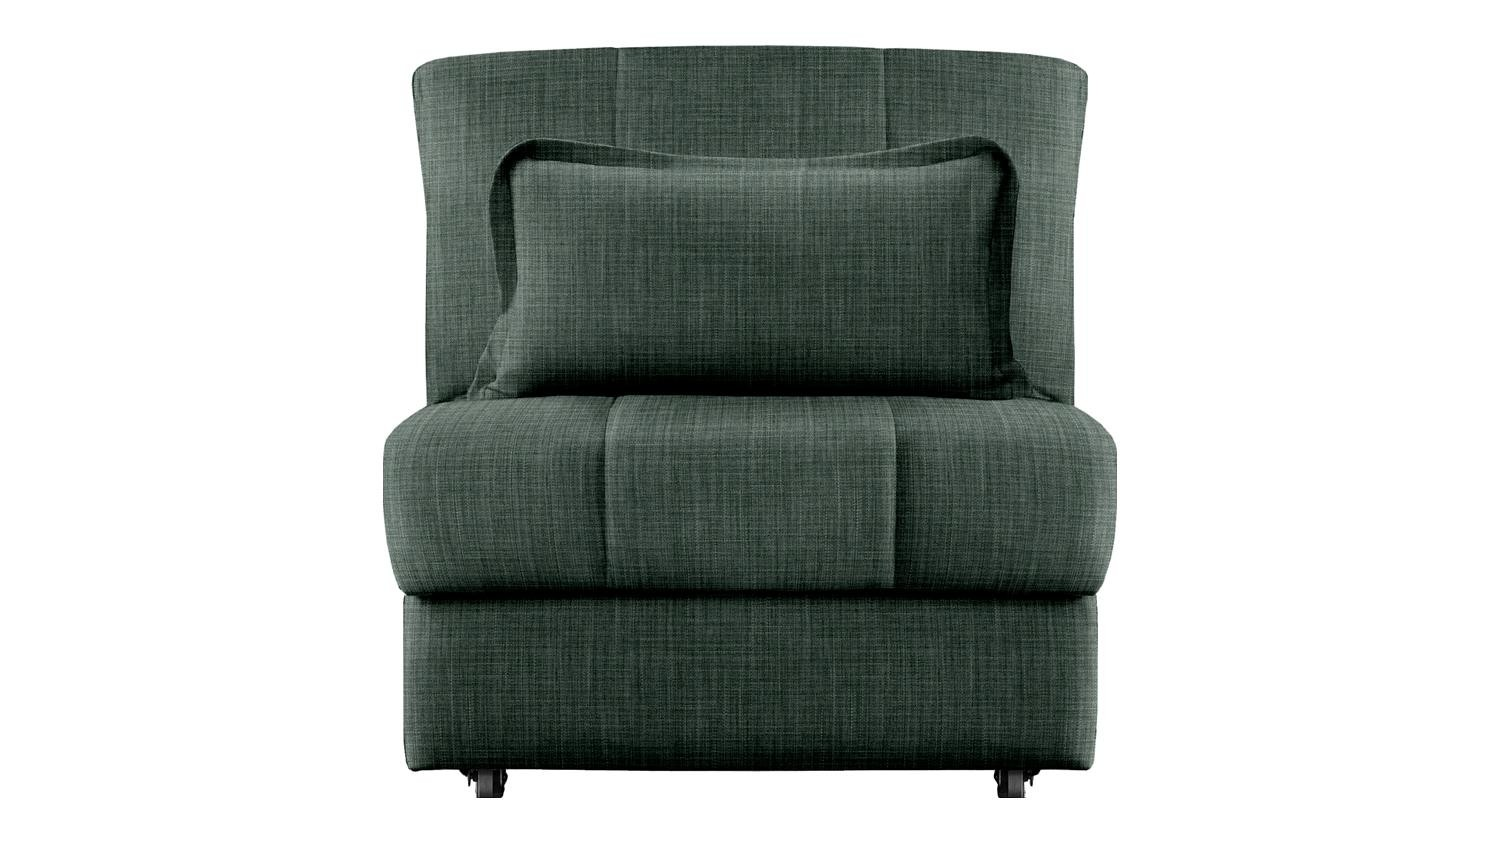 The Appley 1 Seater Sofa Bed